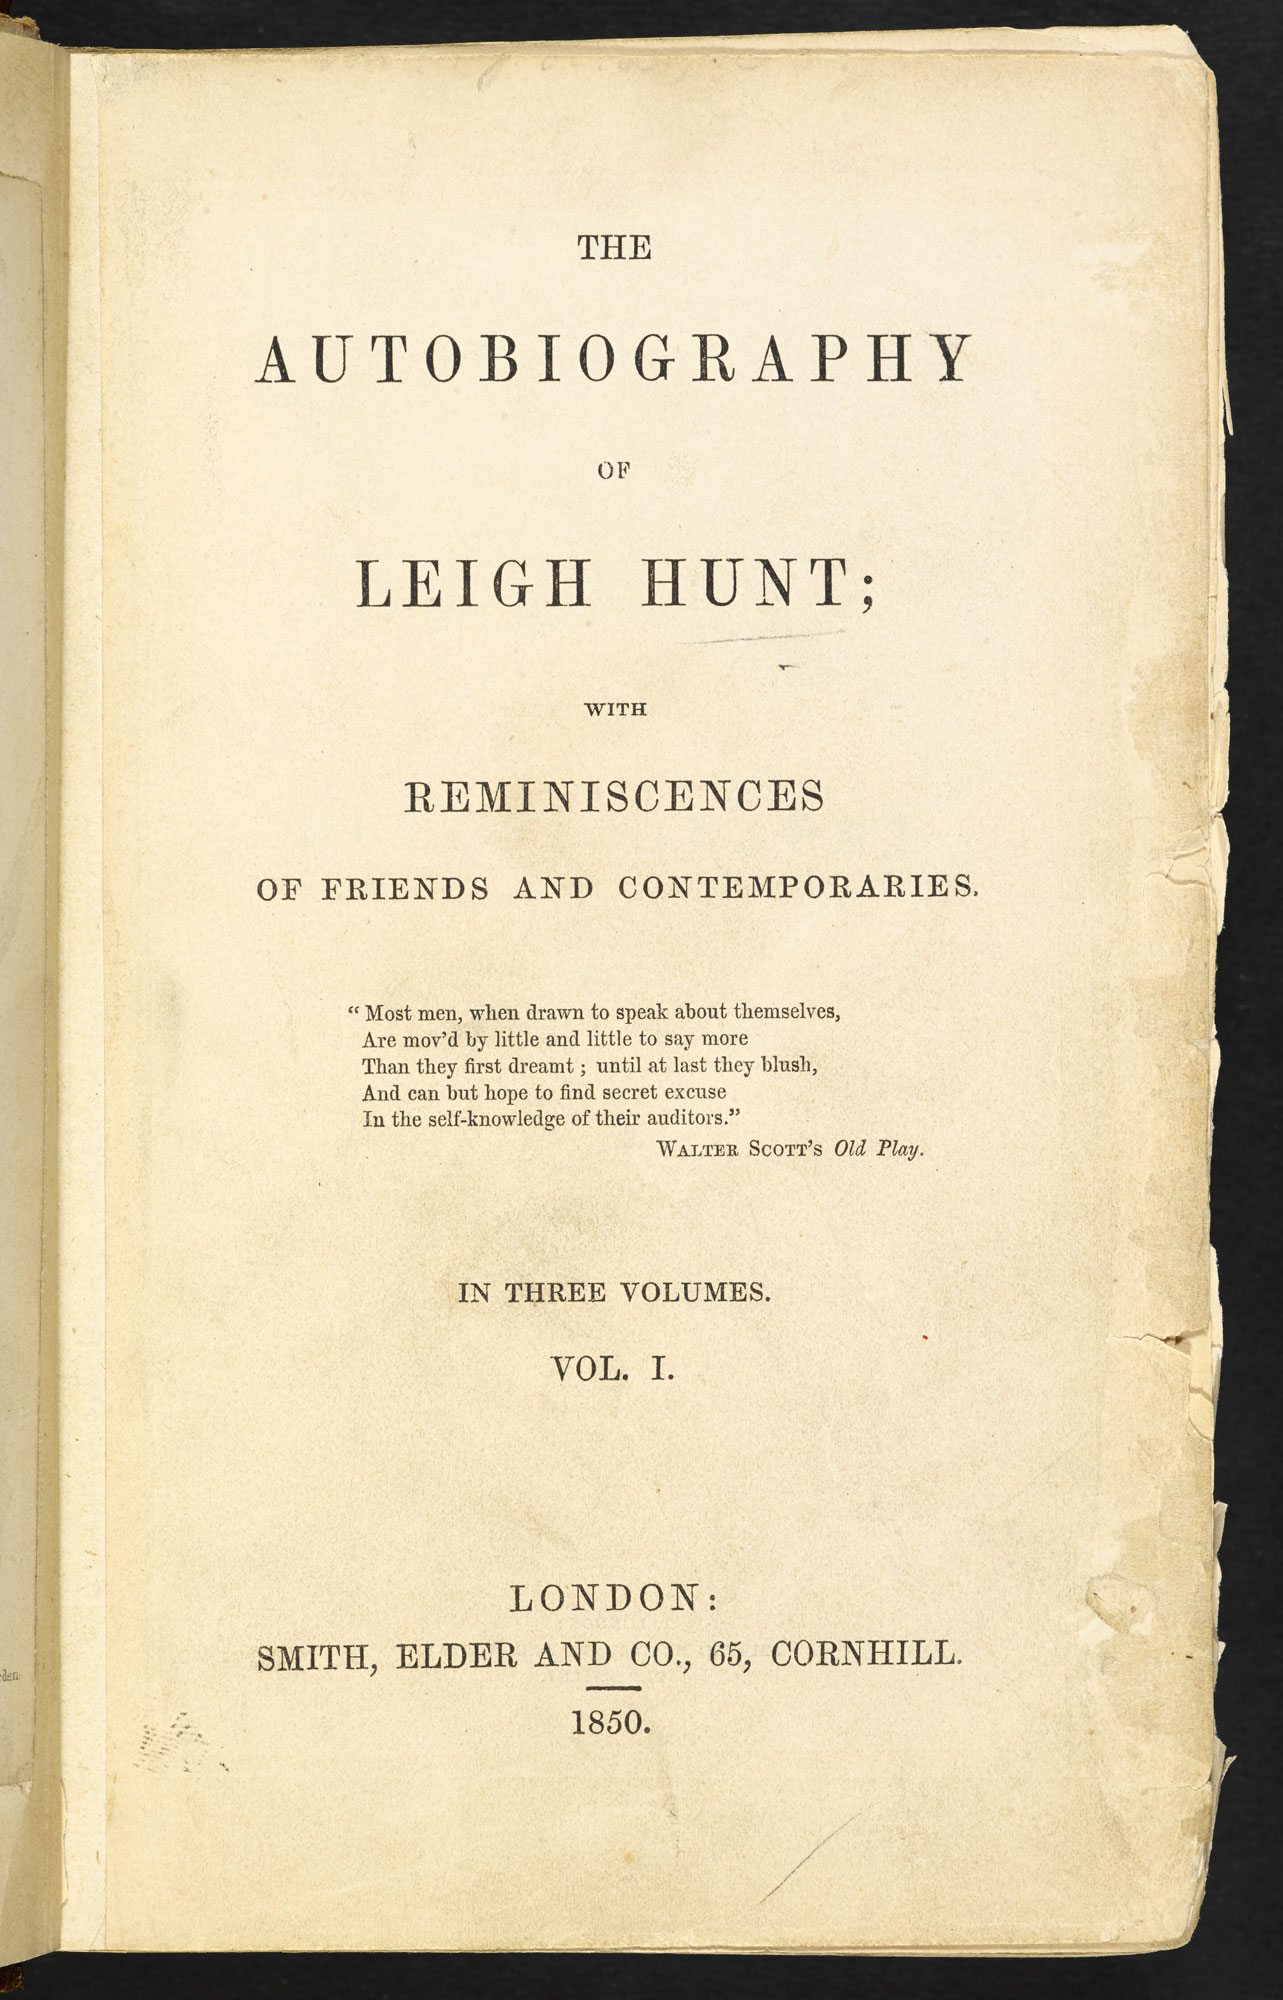 The autobiography of Leigh Hunt